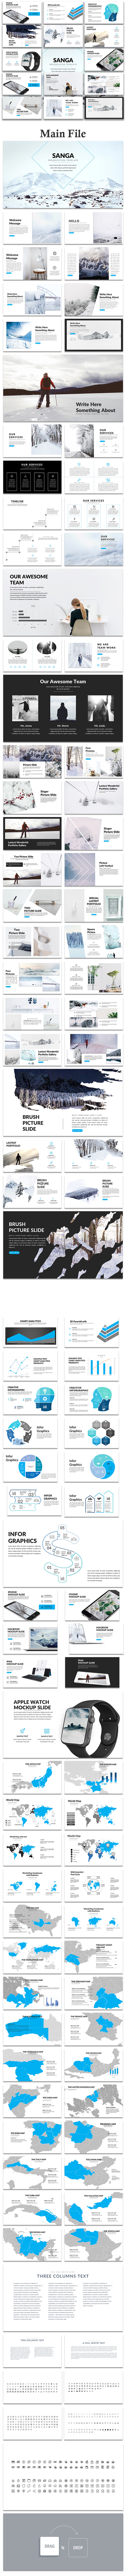 Sanga - Creative Keynote Template - Creative Keynote Templates